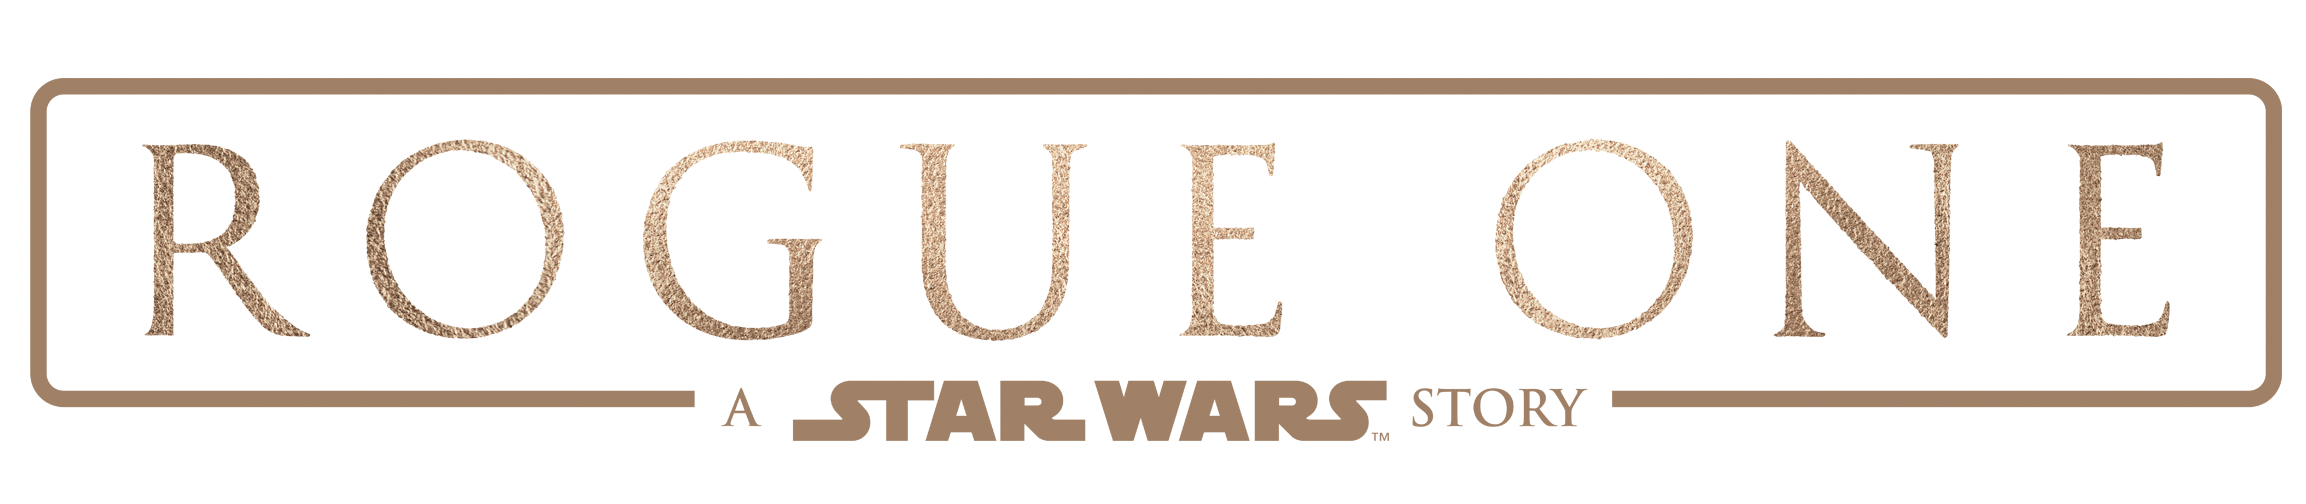 star-wars-rogue-one-title-logo-treatment-transparent-background ...